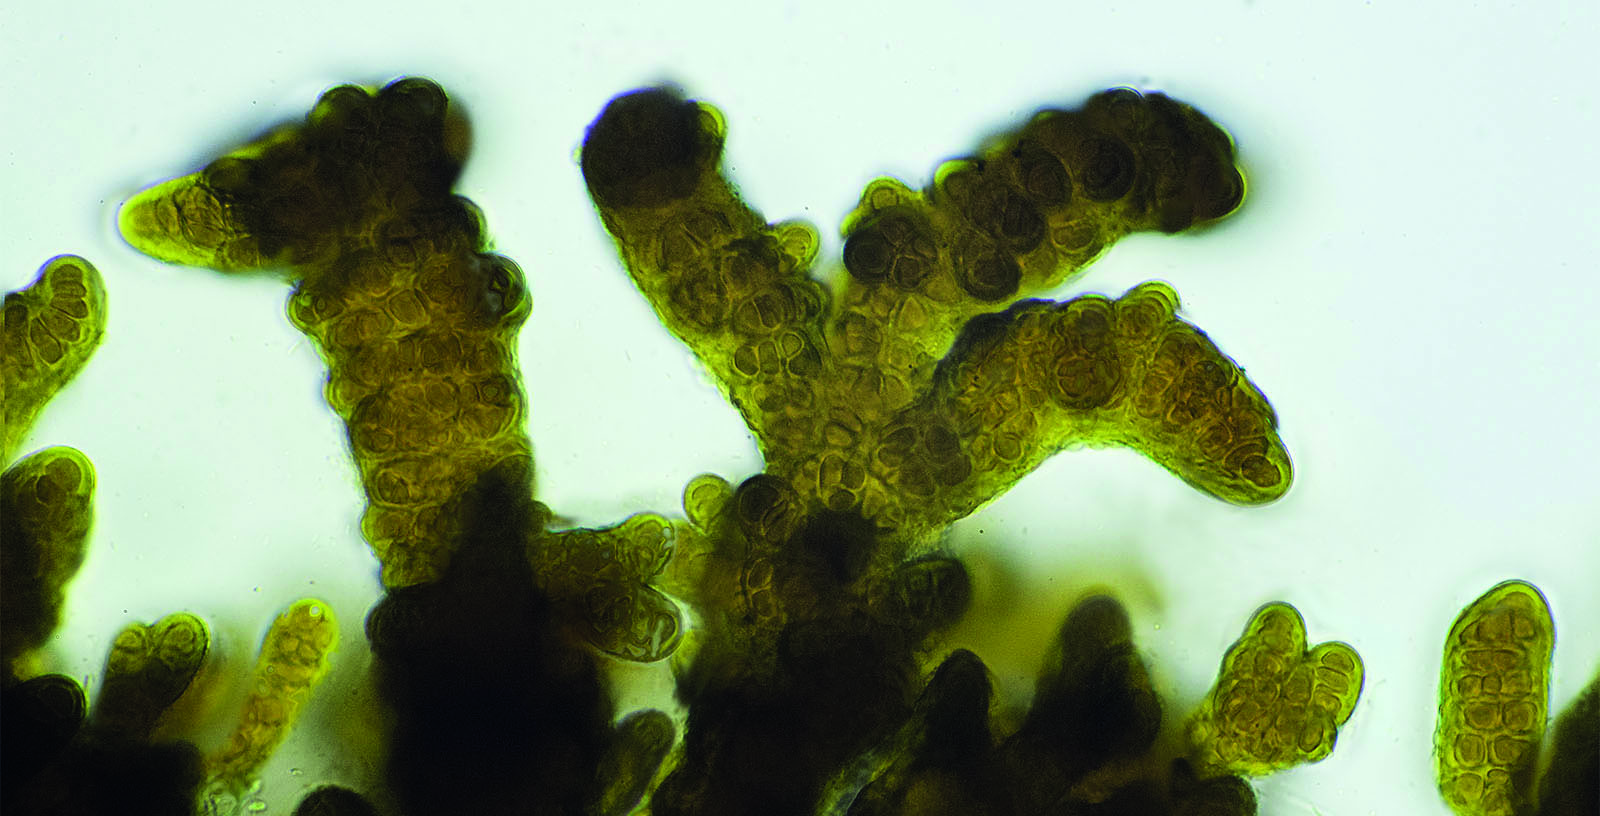 Cyanobacteria. Photo: Flickr, driker